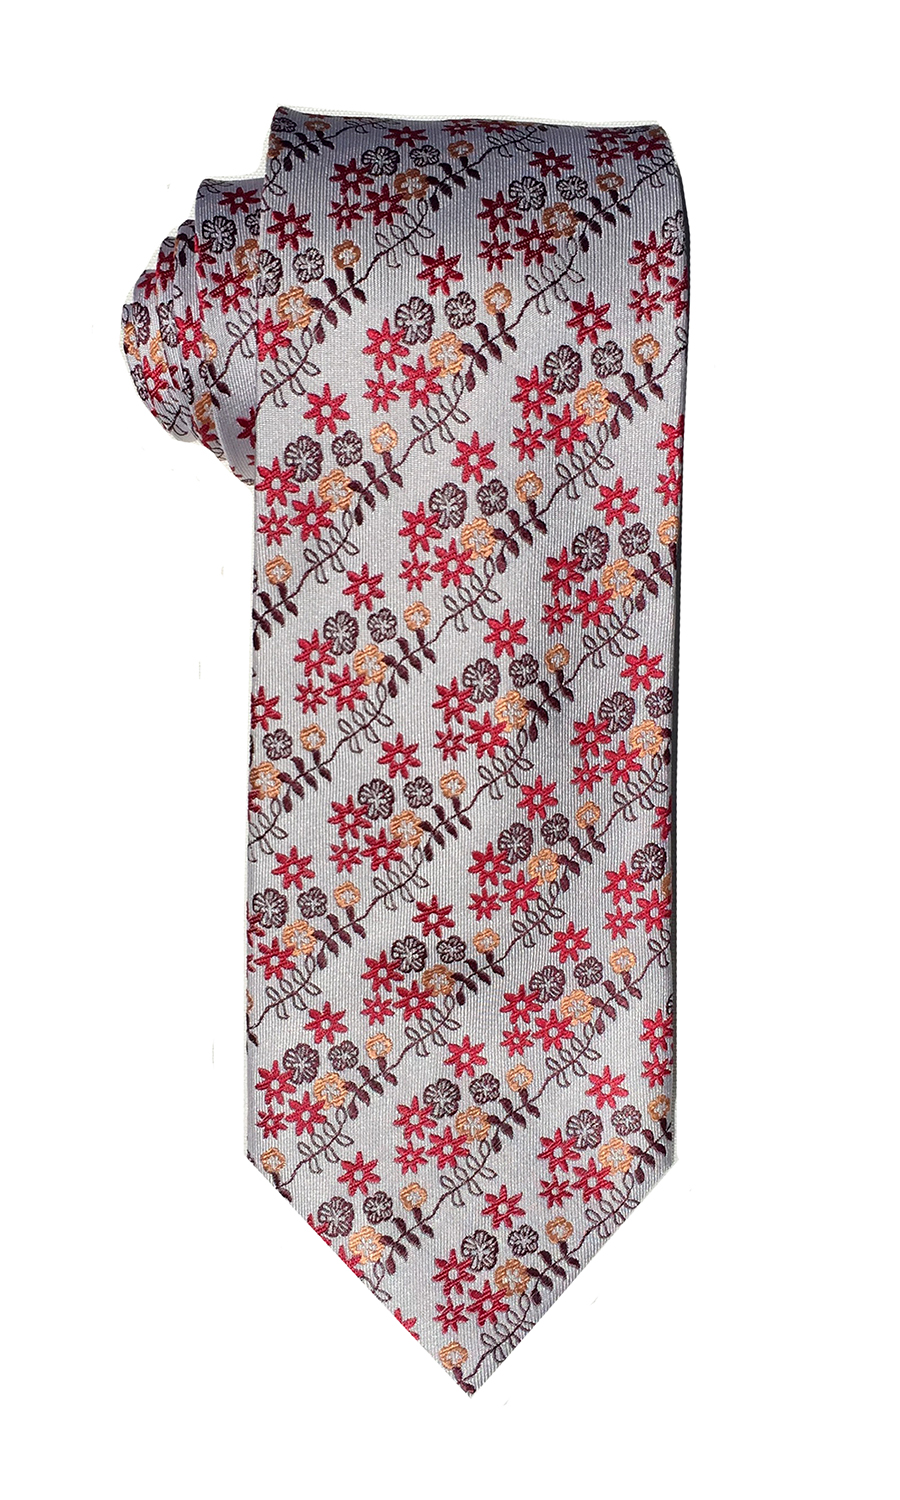 doppeldecker design designer aviation airplane aircraft silk bow tie bowtie foxtrot charlie